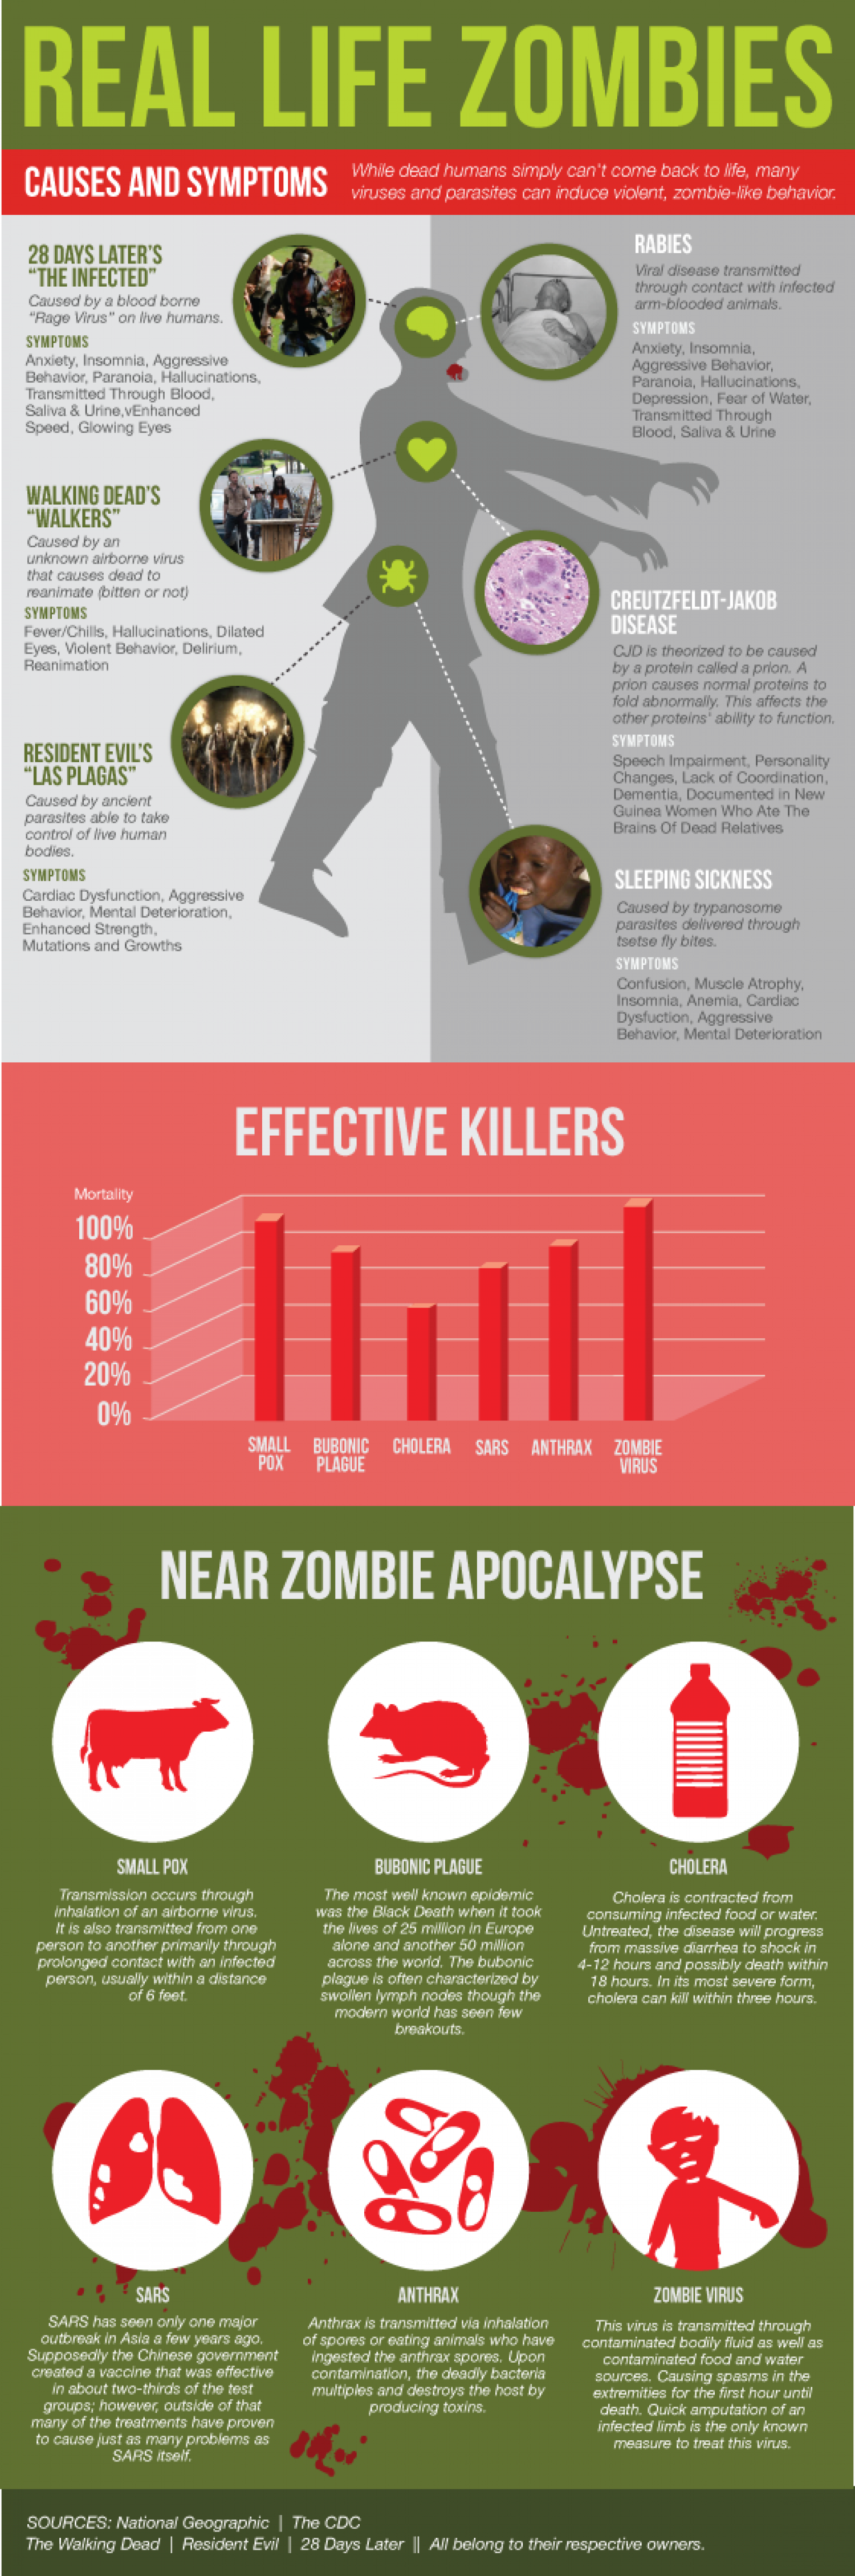 Real Life Zombies Infographic